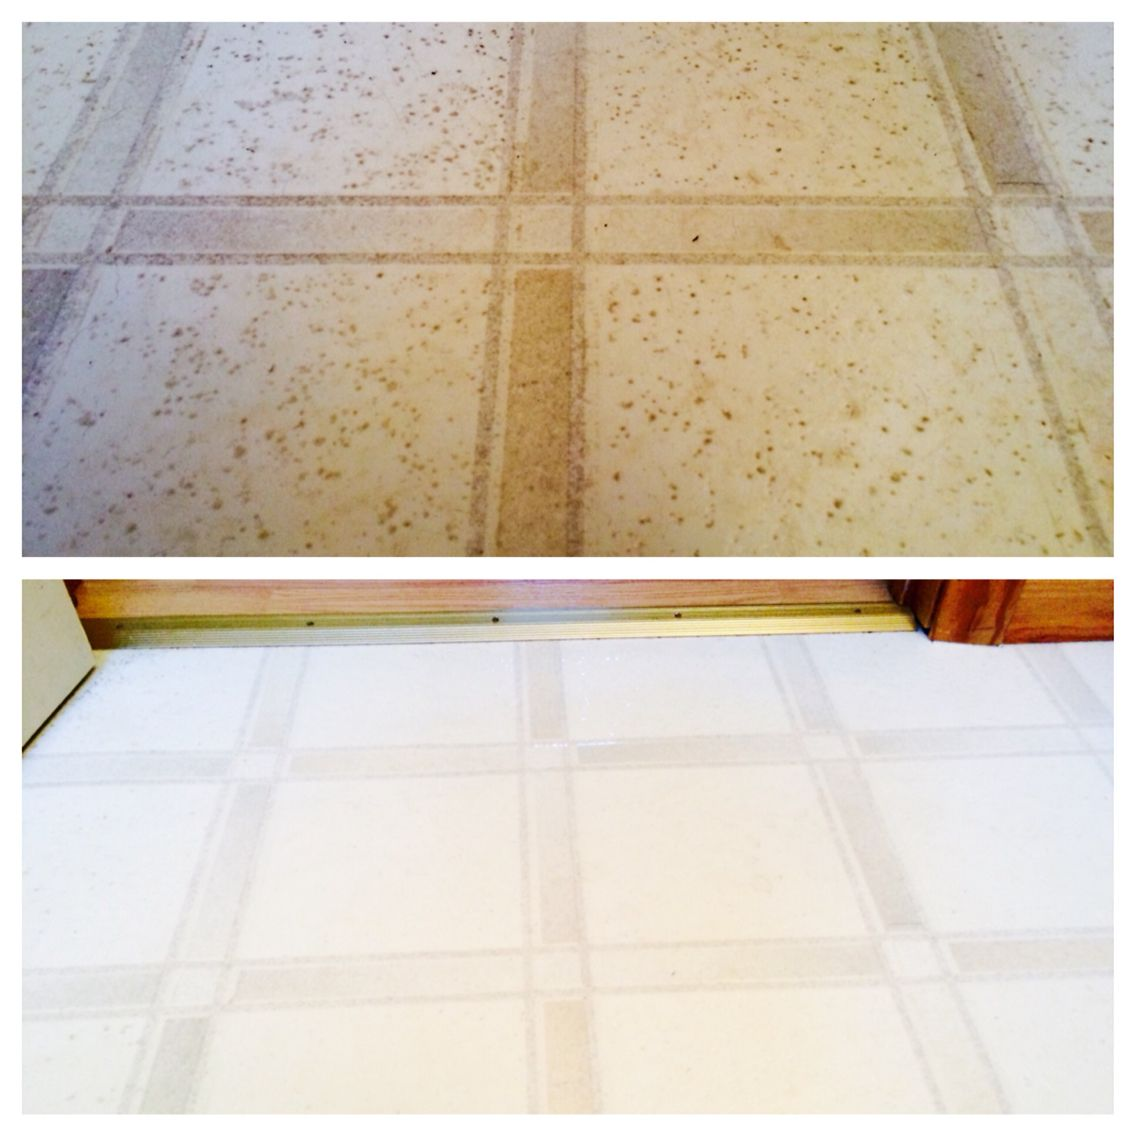 Believe It Or Not The Top Photo Is My Bathroom Floor That Had Just Been Swept And